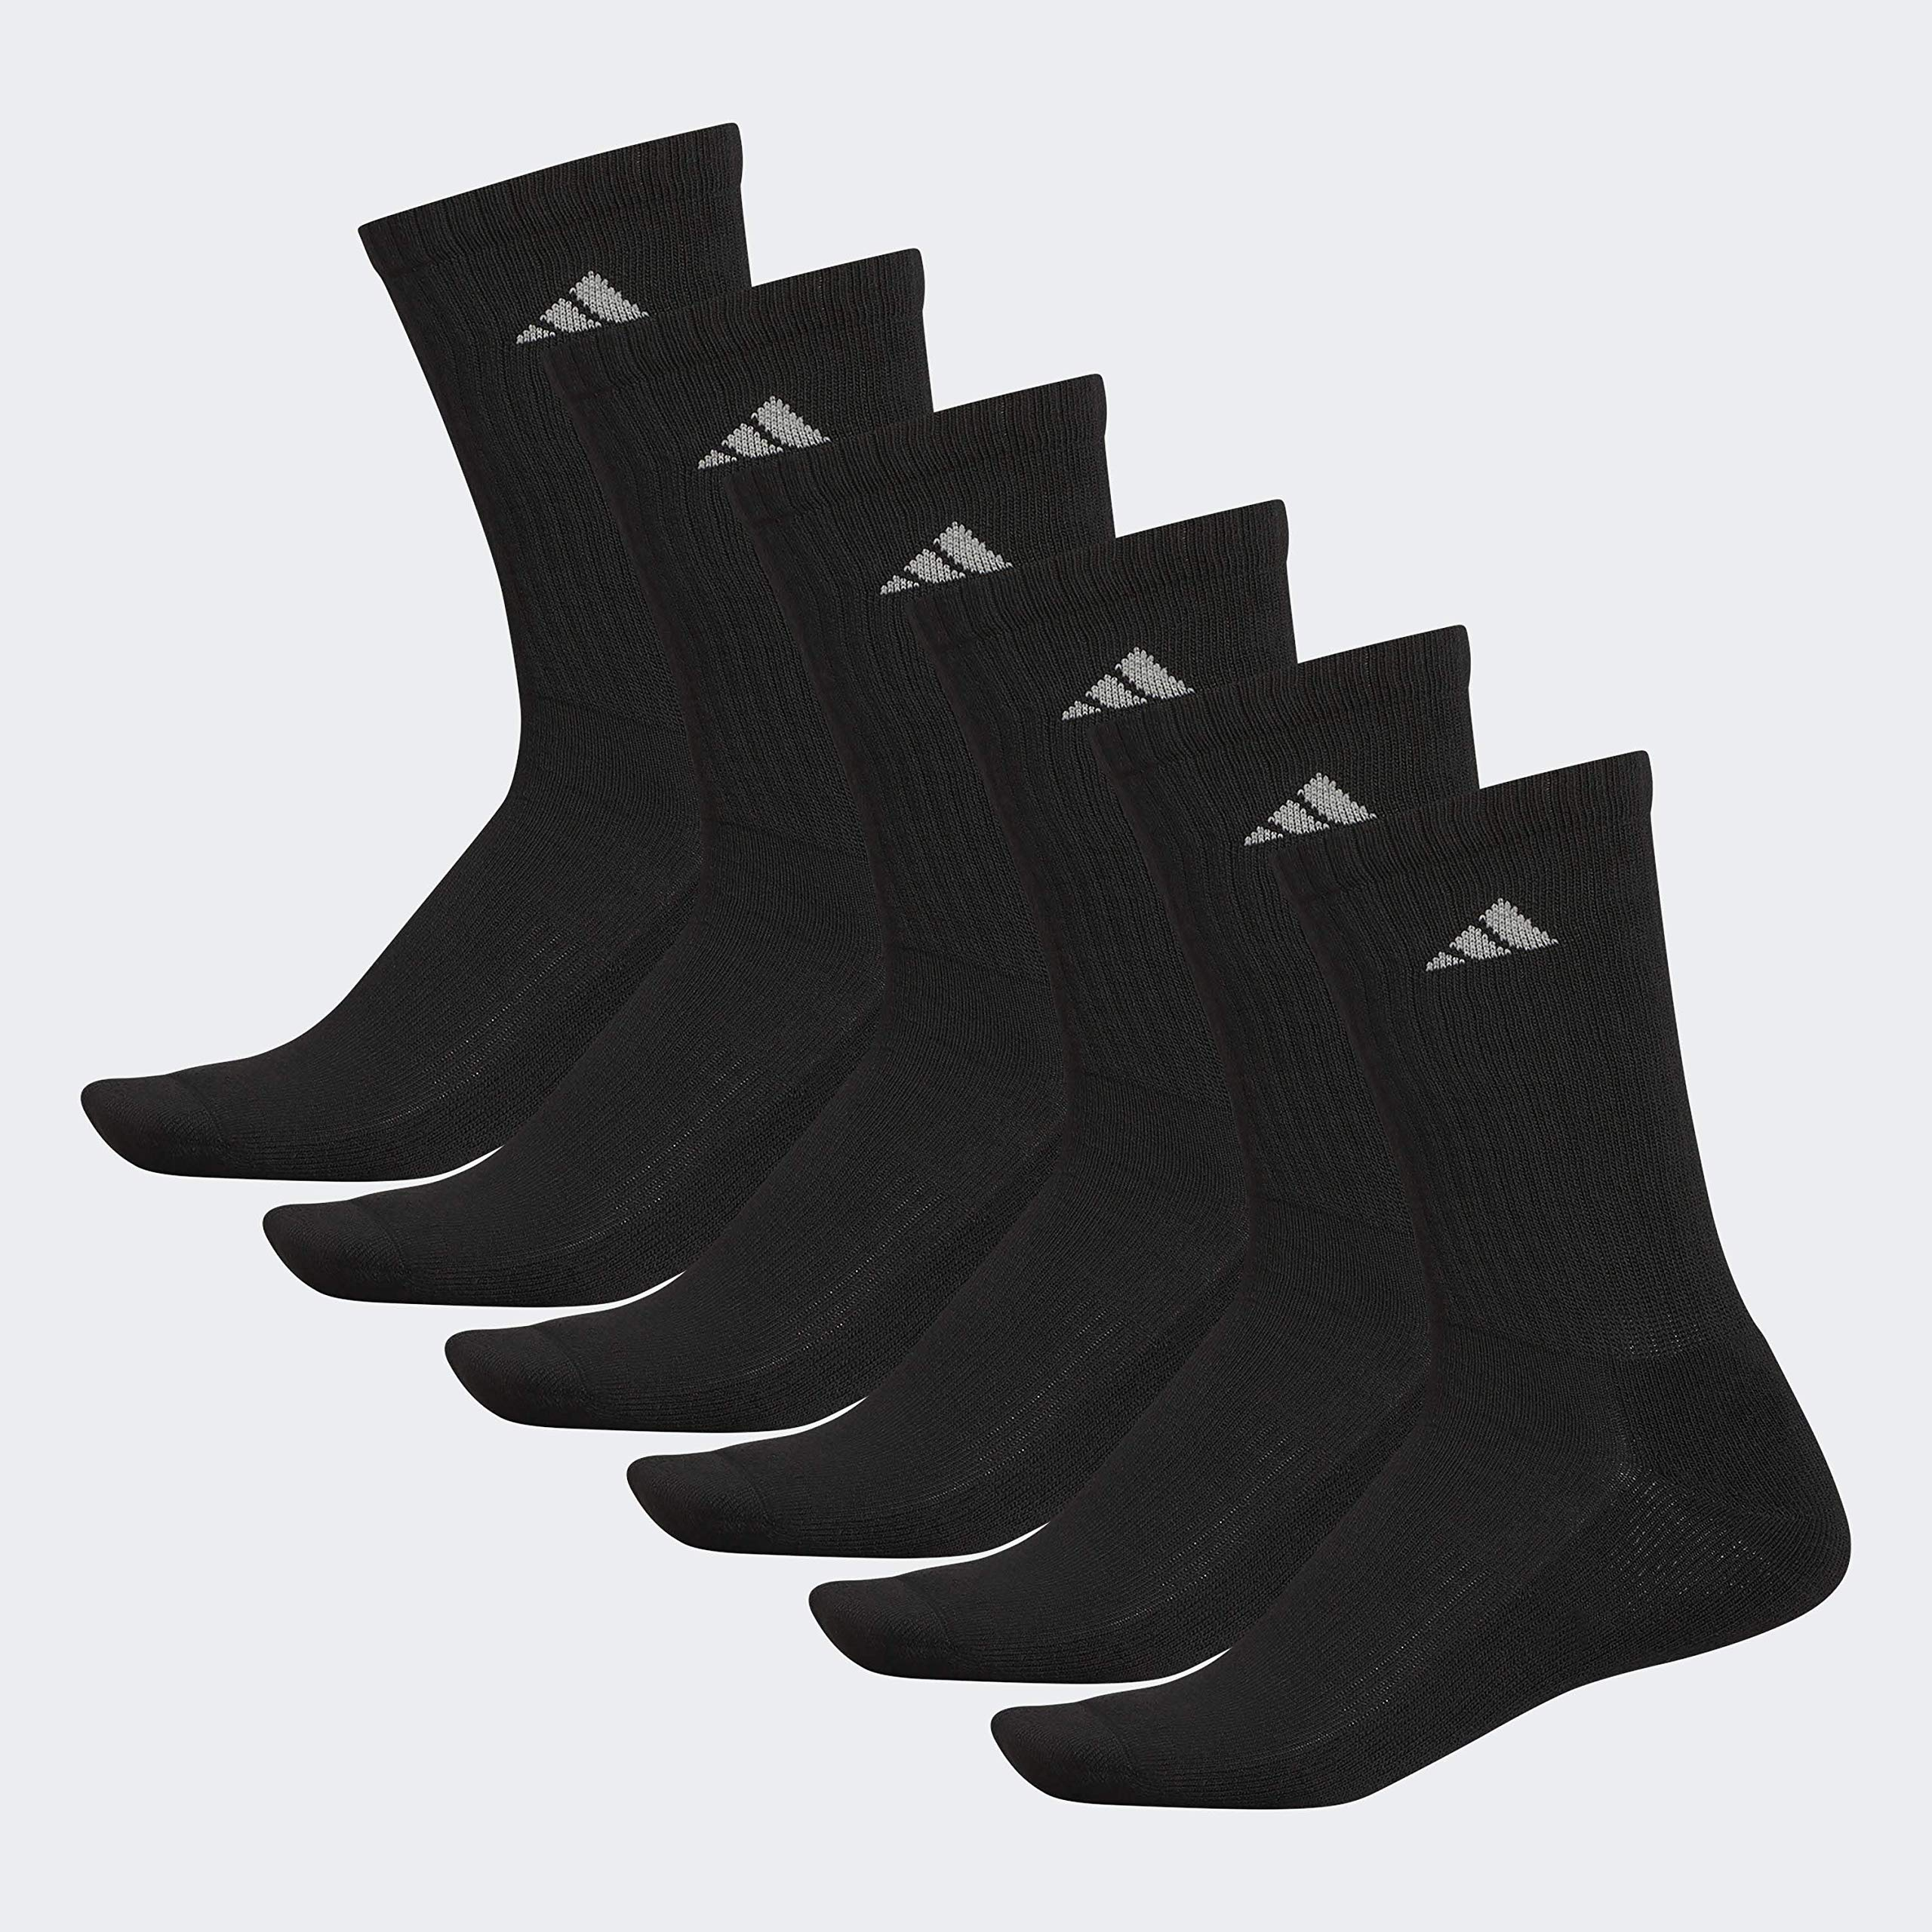 adidas Men's Athletic 6-Pack Crew Socks, Black/Aluminum 2, Large, (Shoe Size 6-12) by adidas